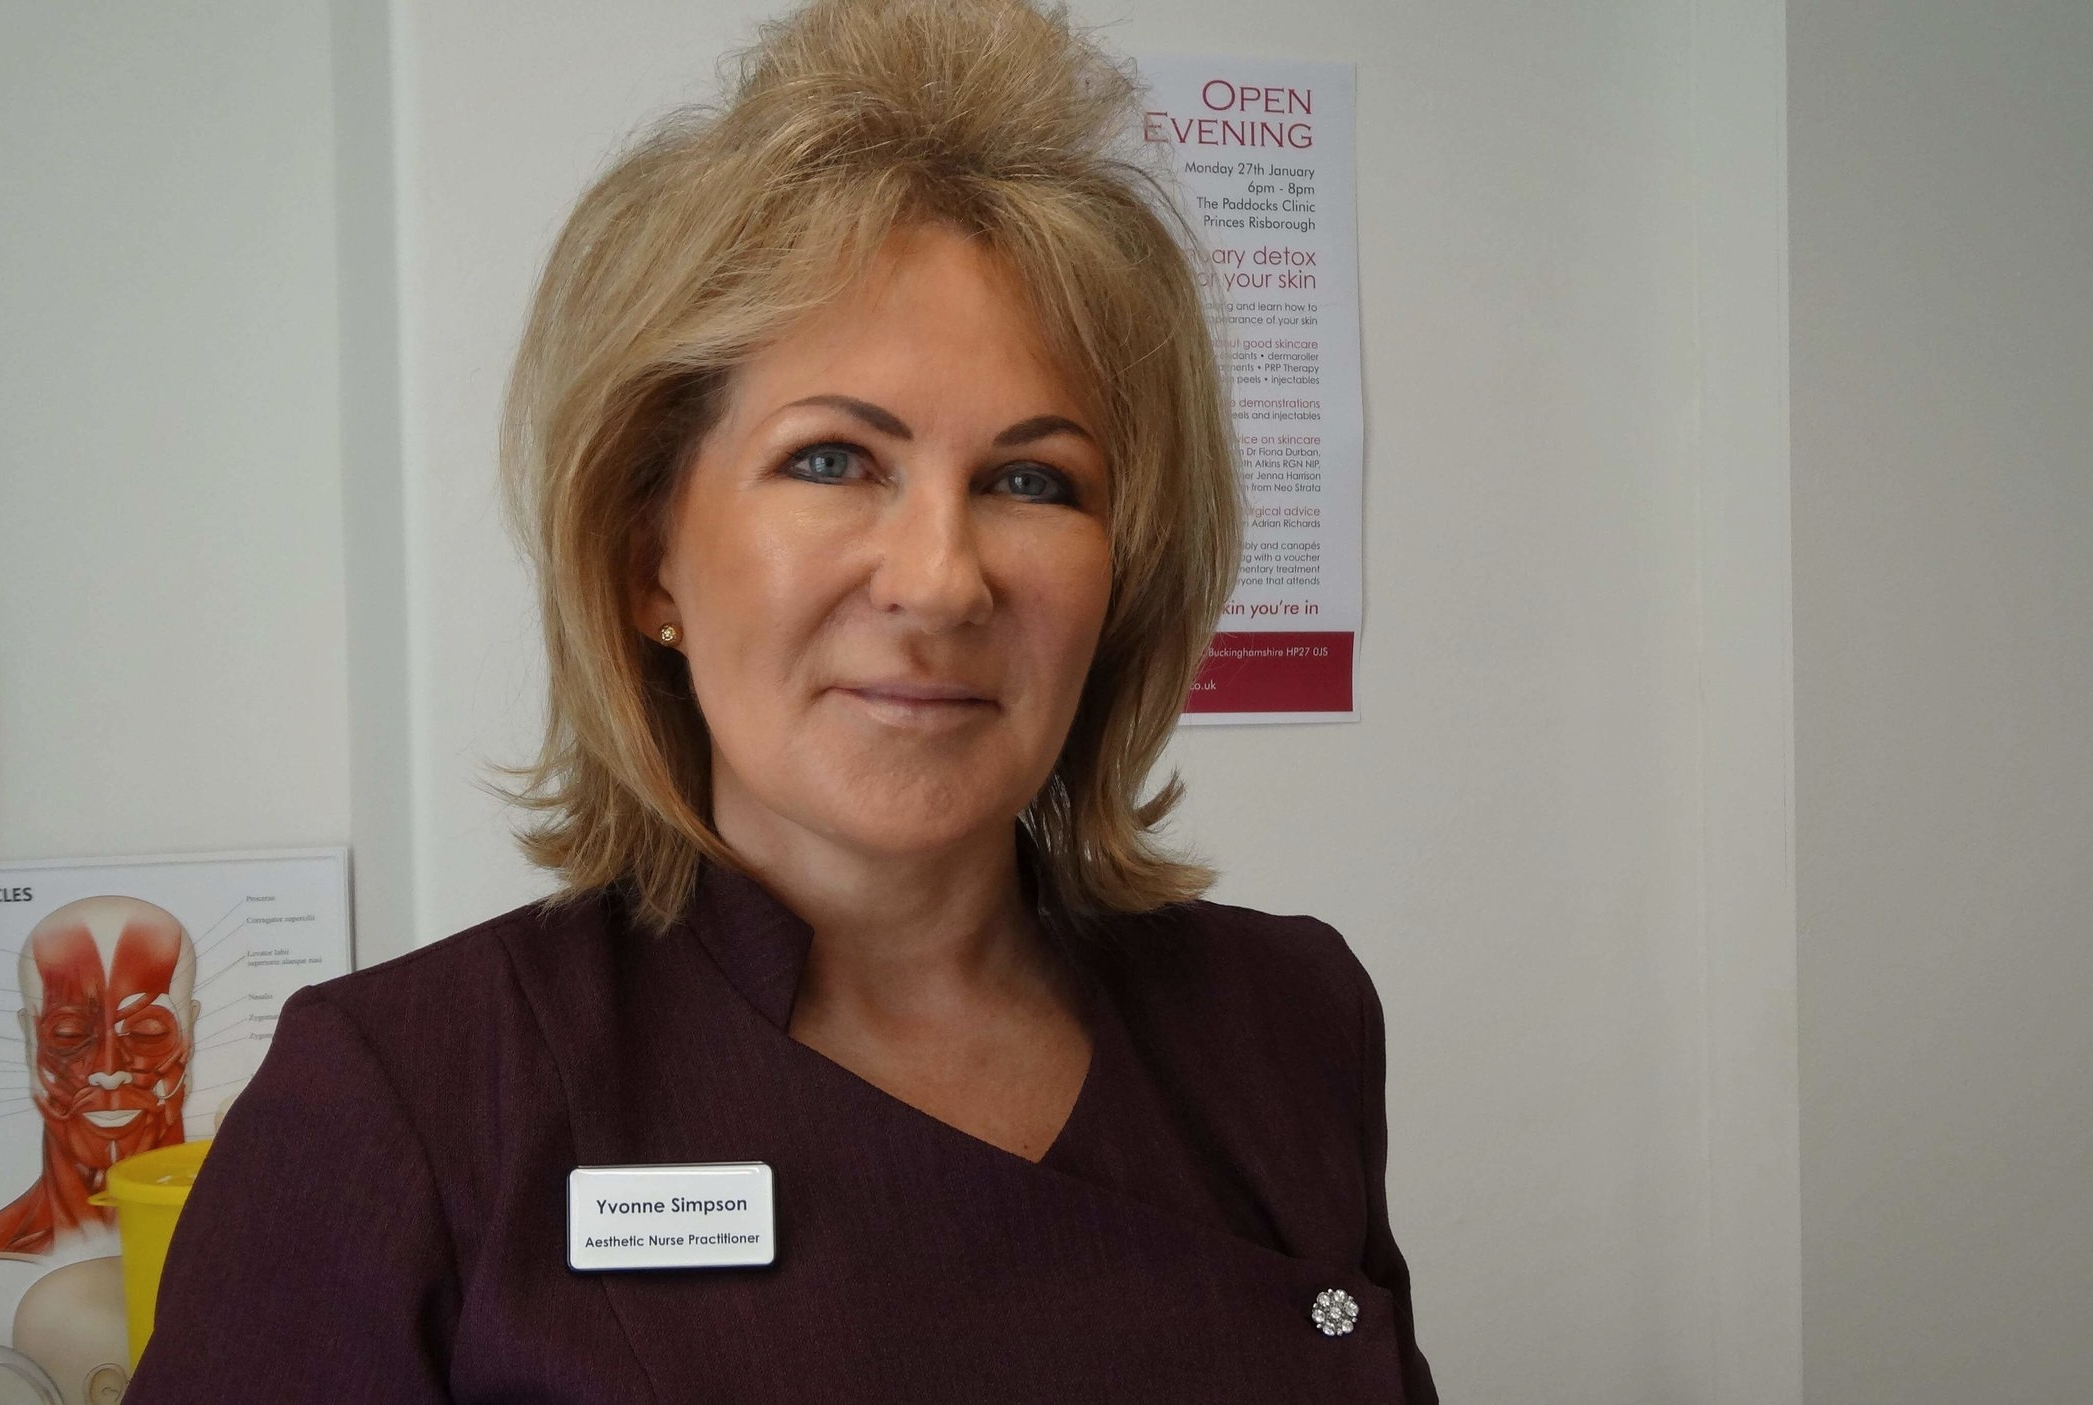 Yvonne Simpson at at Cotswold Face Aesthetics